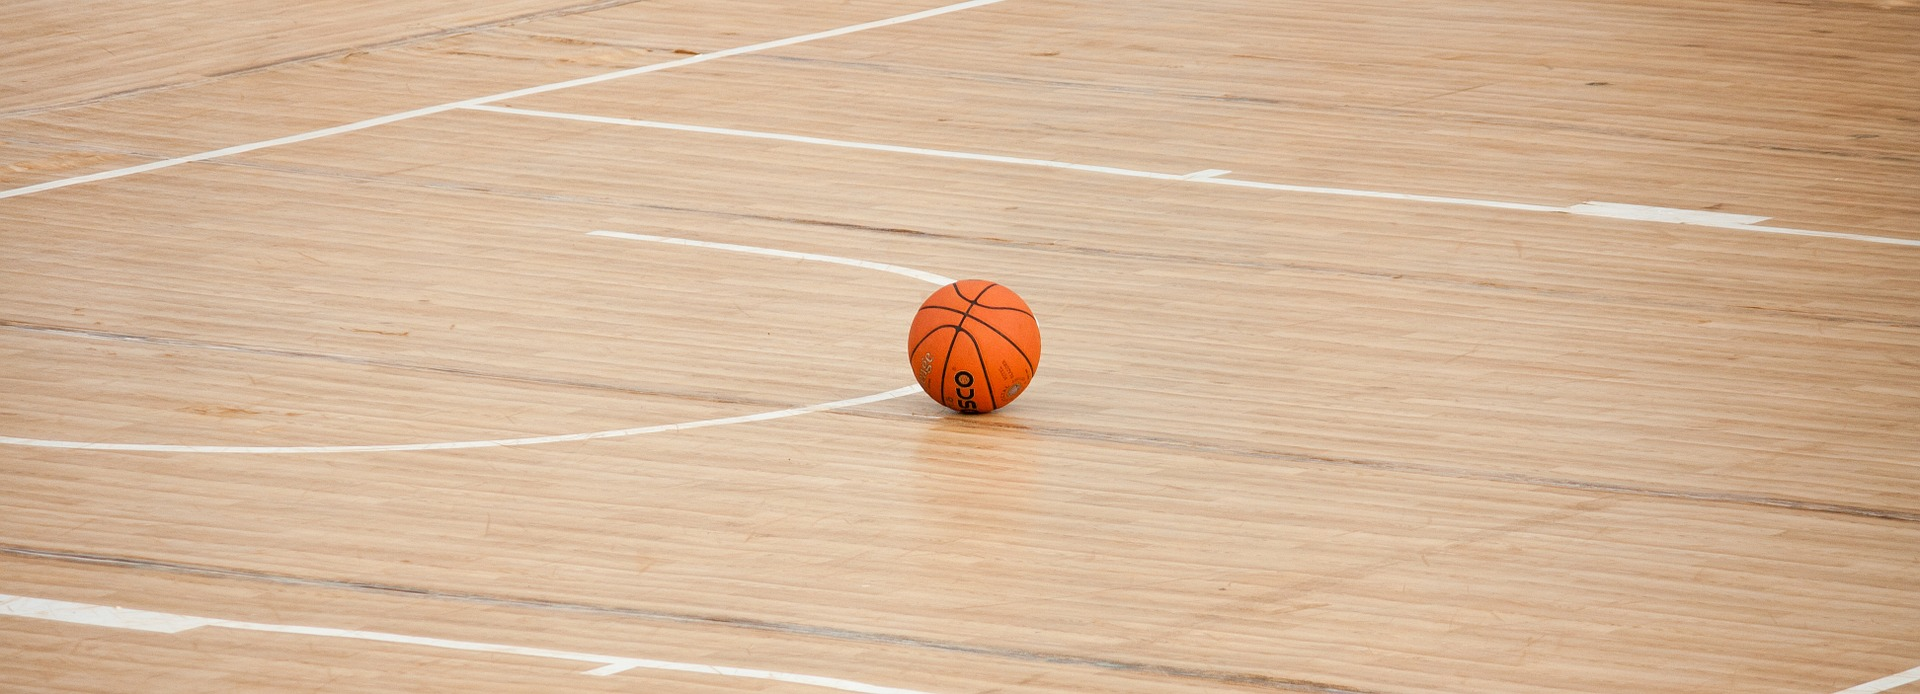 significance of basketball image